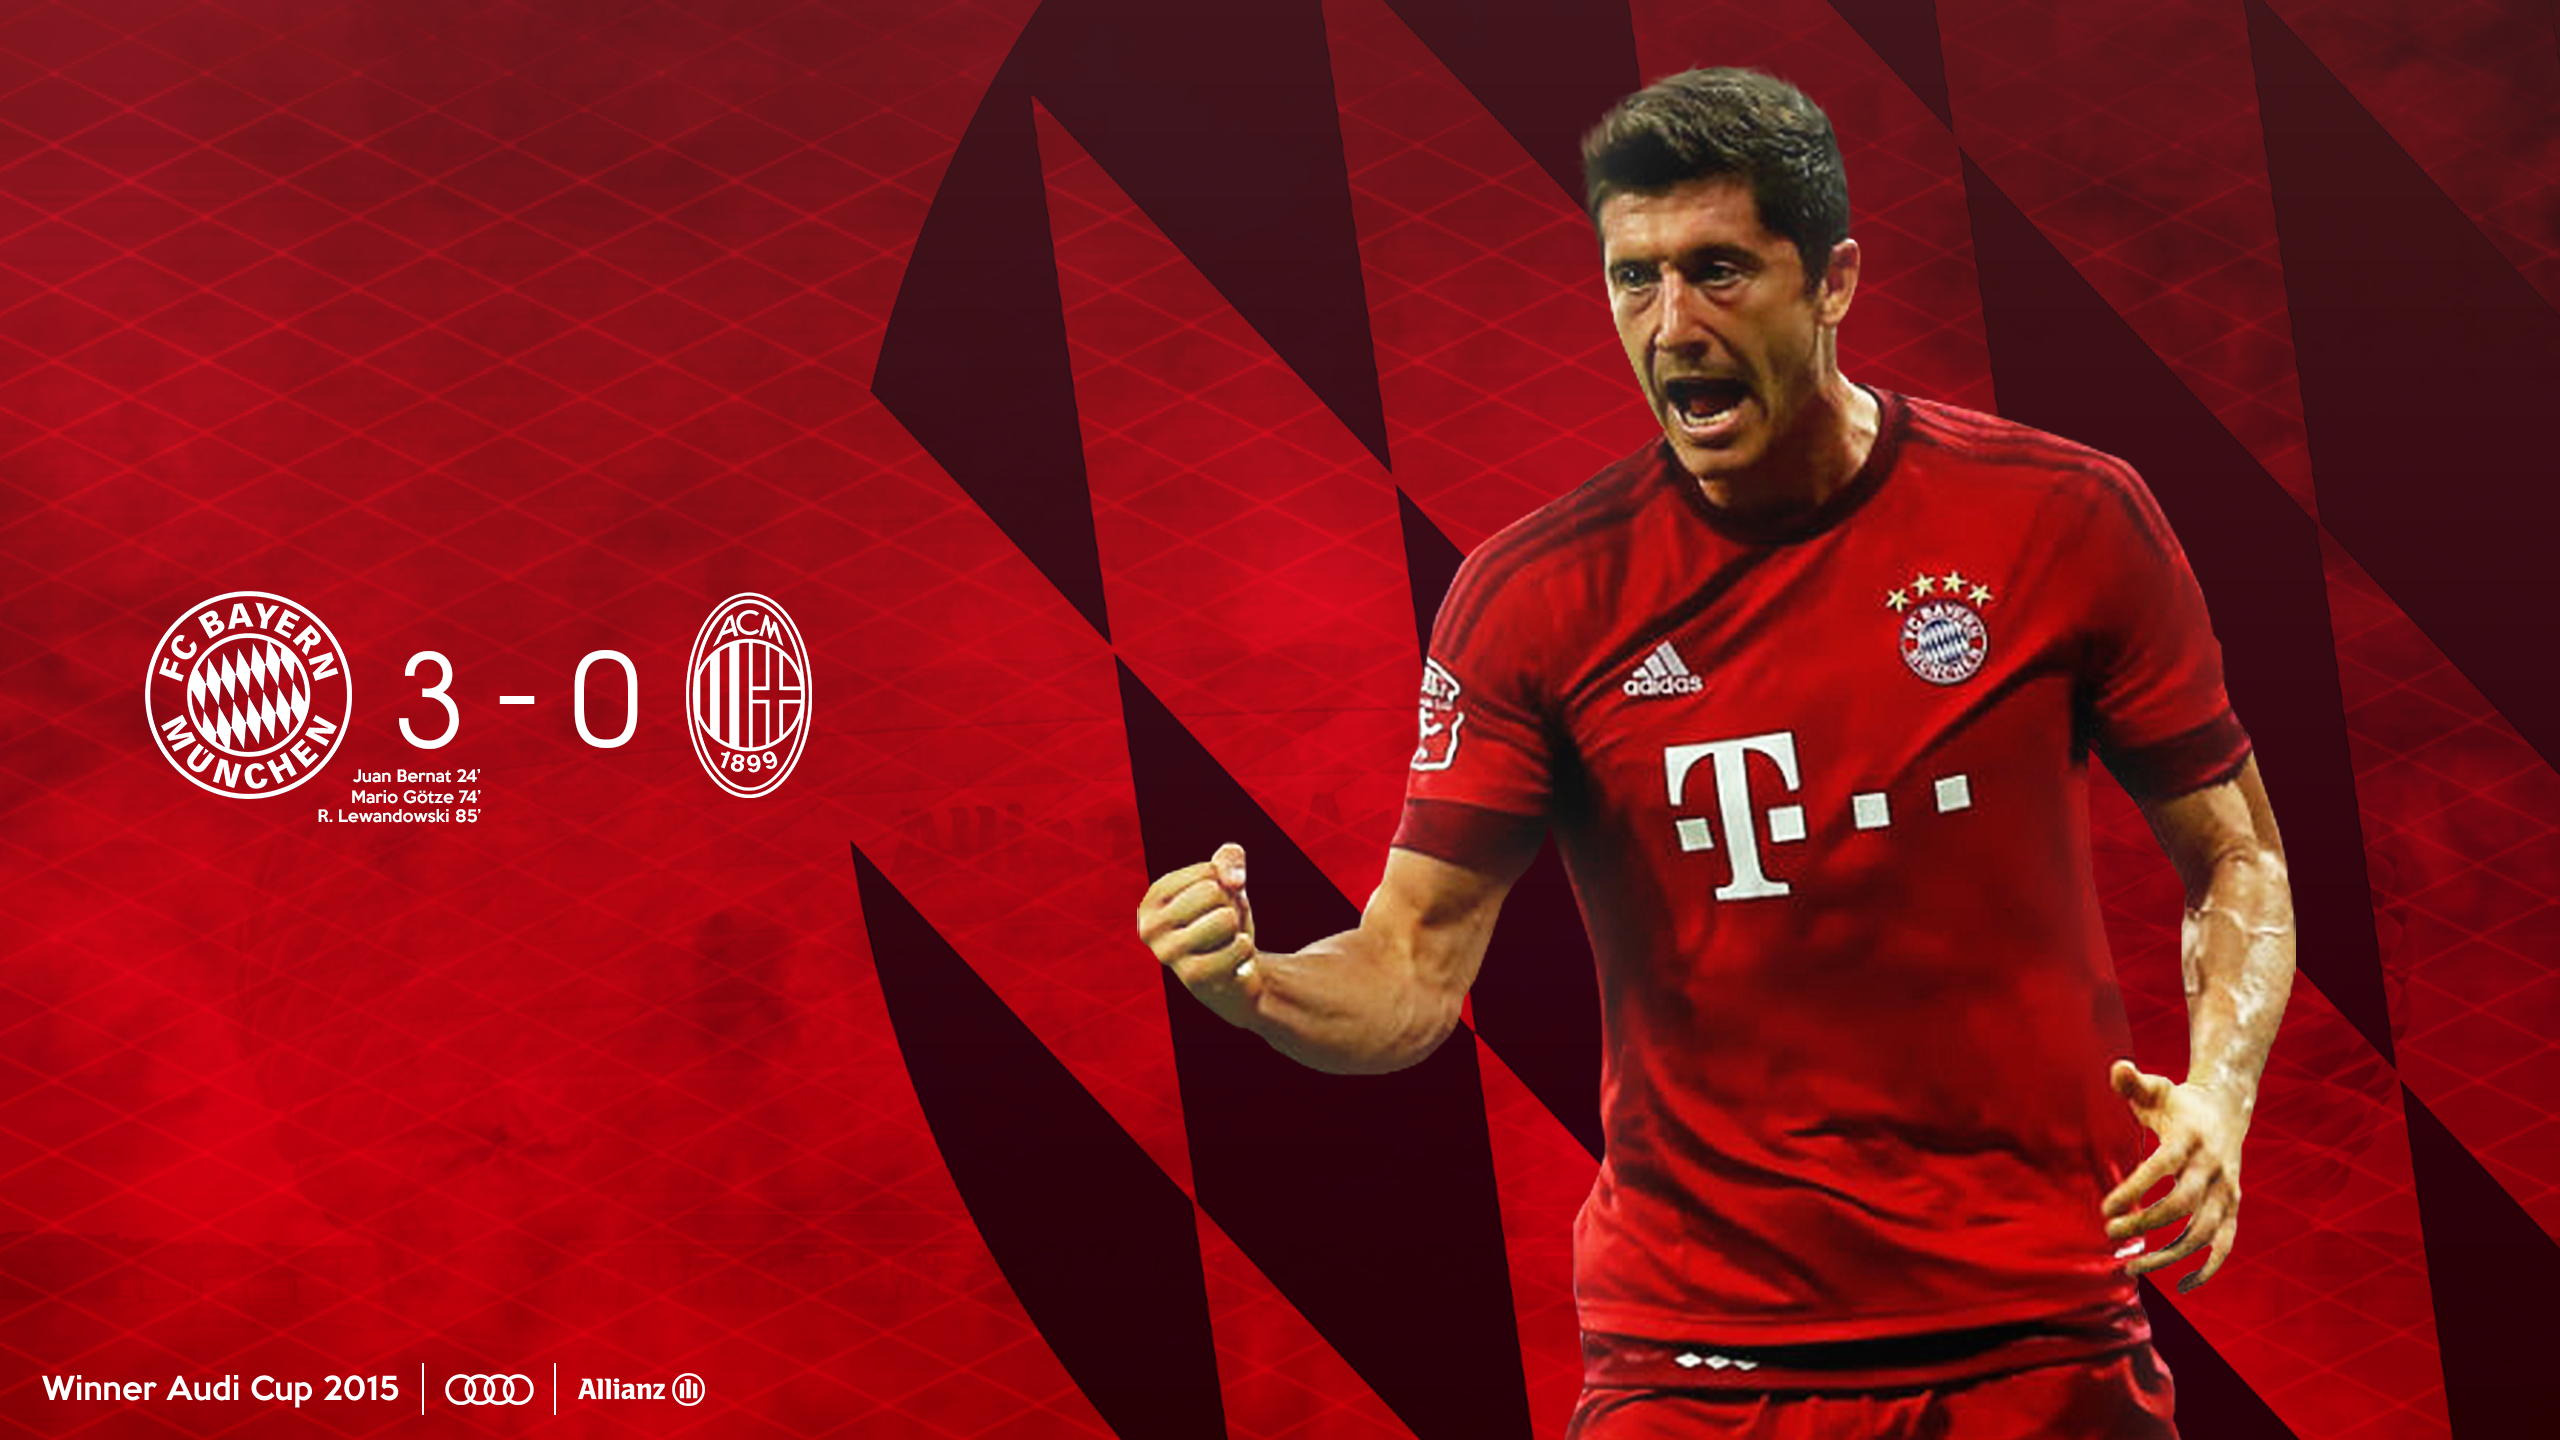 Robert Lewandowski Wallpapers Find Best Latest Robert Lewandowski